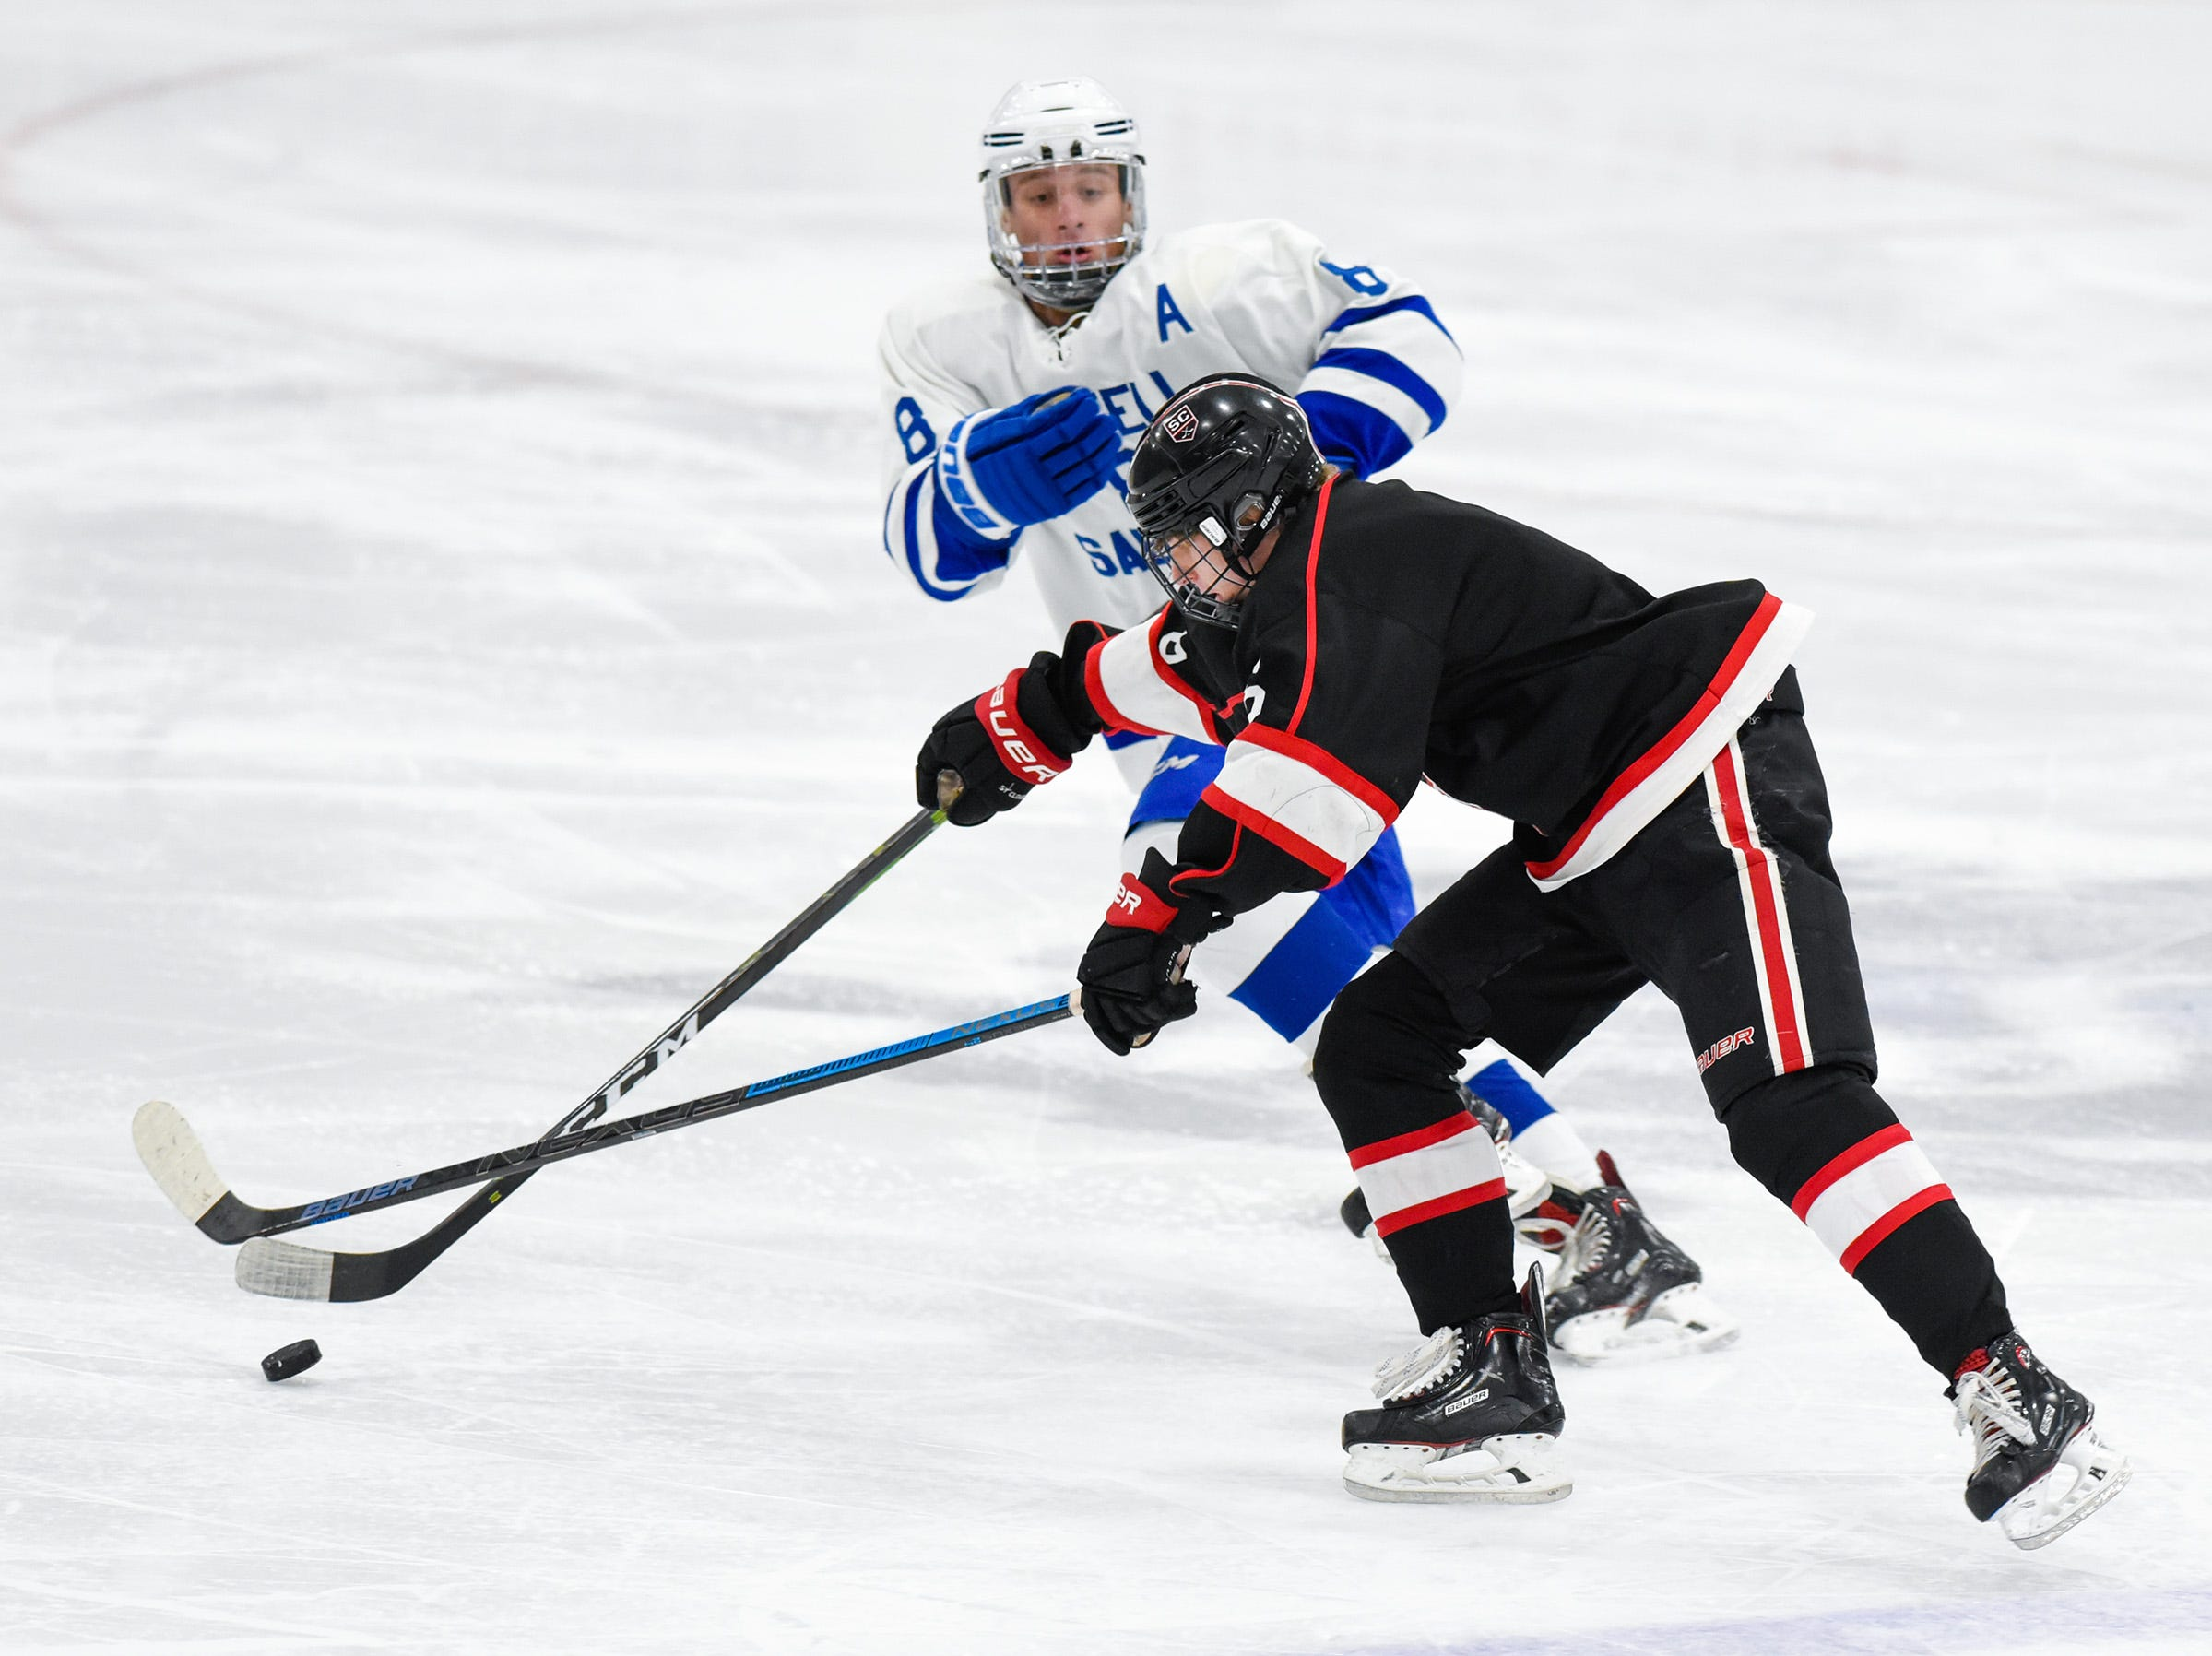 St. Cloud's Eric Warner takes the puck past Sartell's Connor Kalthoff during the first period Tuesday, Dec. 18, at the Bernick's Arena in Sartell.